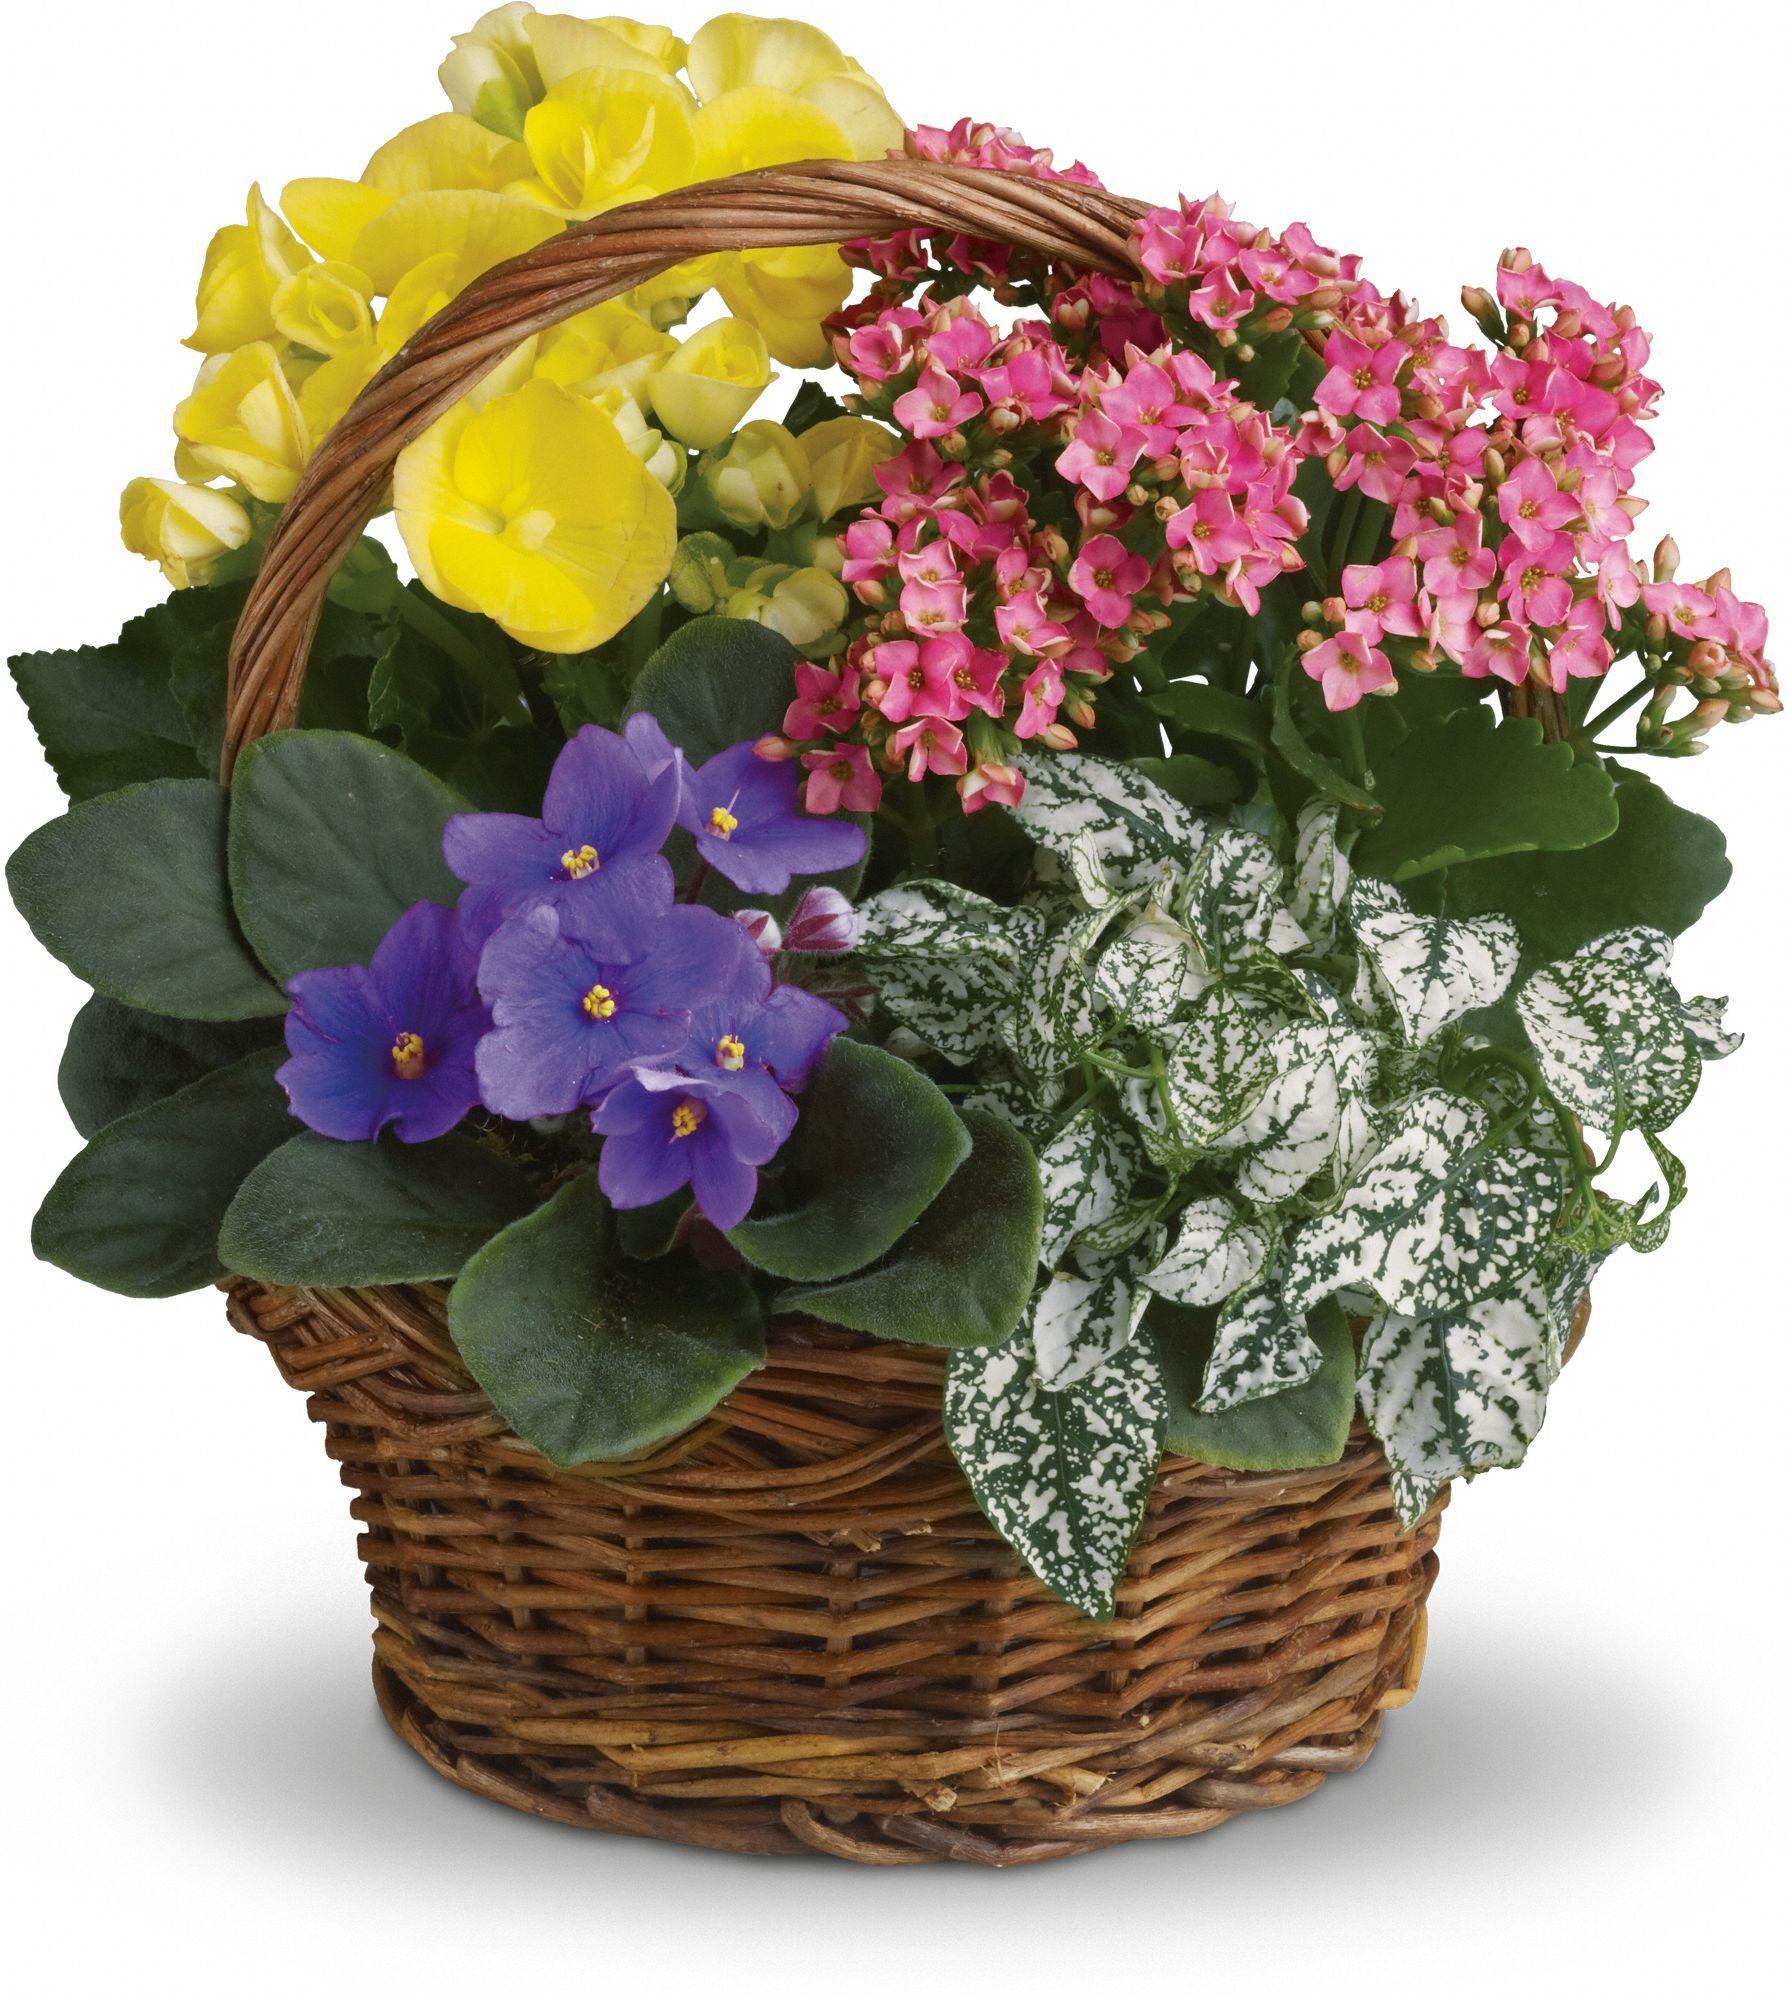 Spring has sprung mixed basket save 25 on this bouquet and many spring has sprung mixed basket save 25 on this bouquet and many others with coupon cheap flowerstulips izmirmasajfo